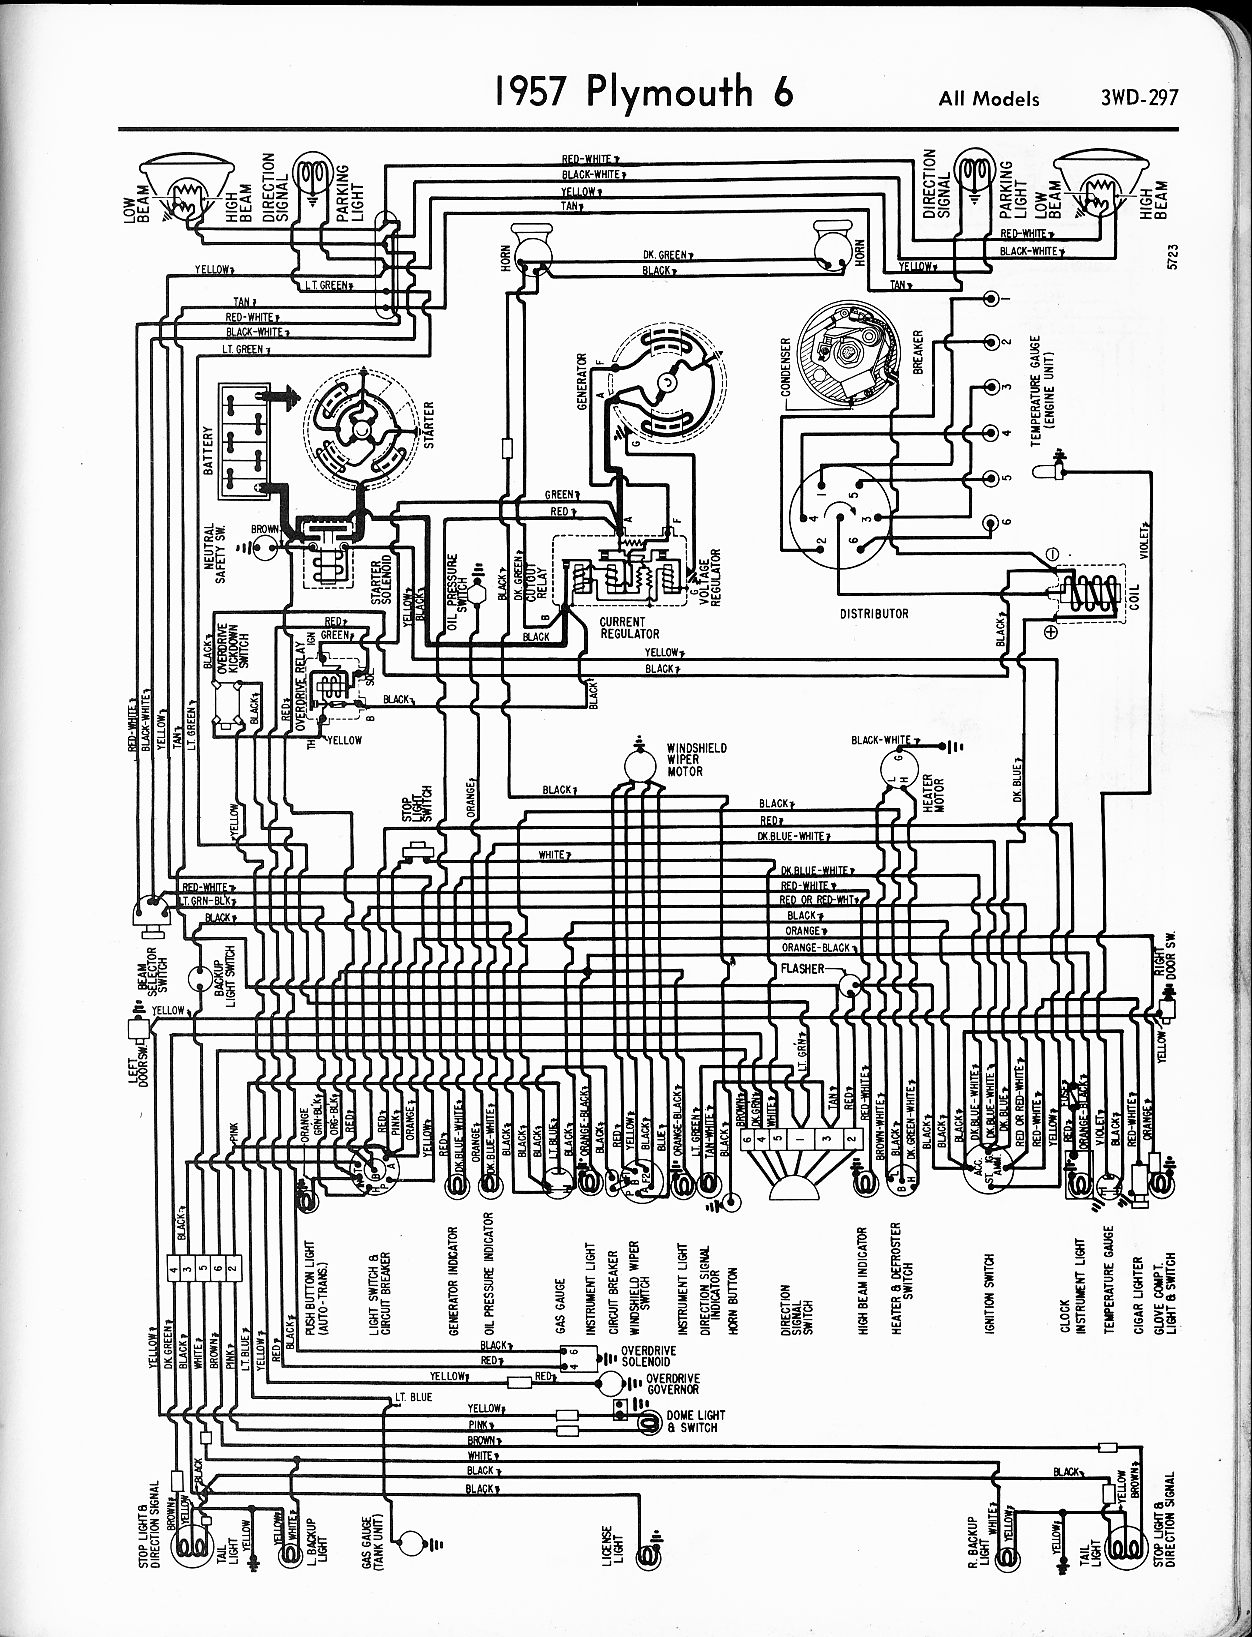 1966 Chrysler 440 Wiring Diagram, 1966, Get Free Image